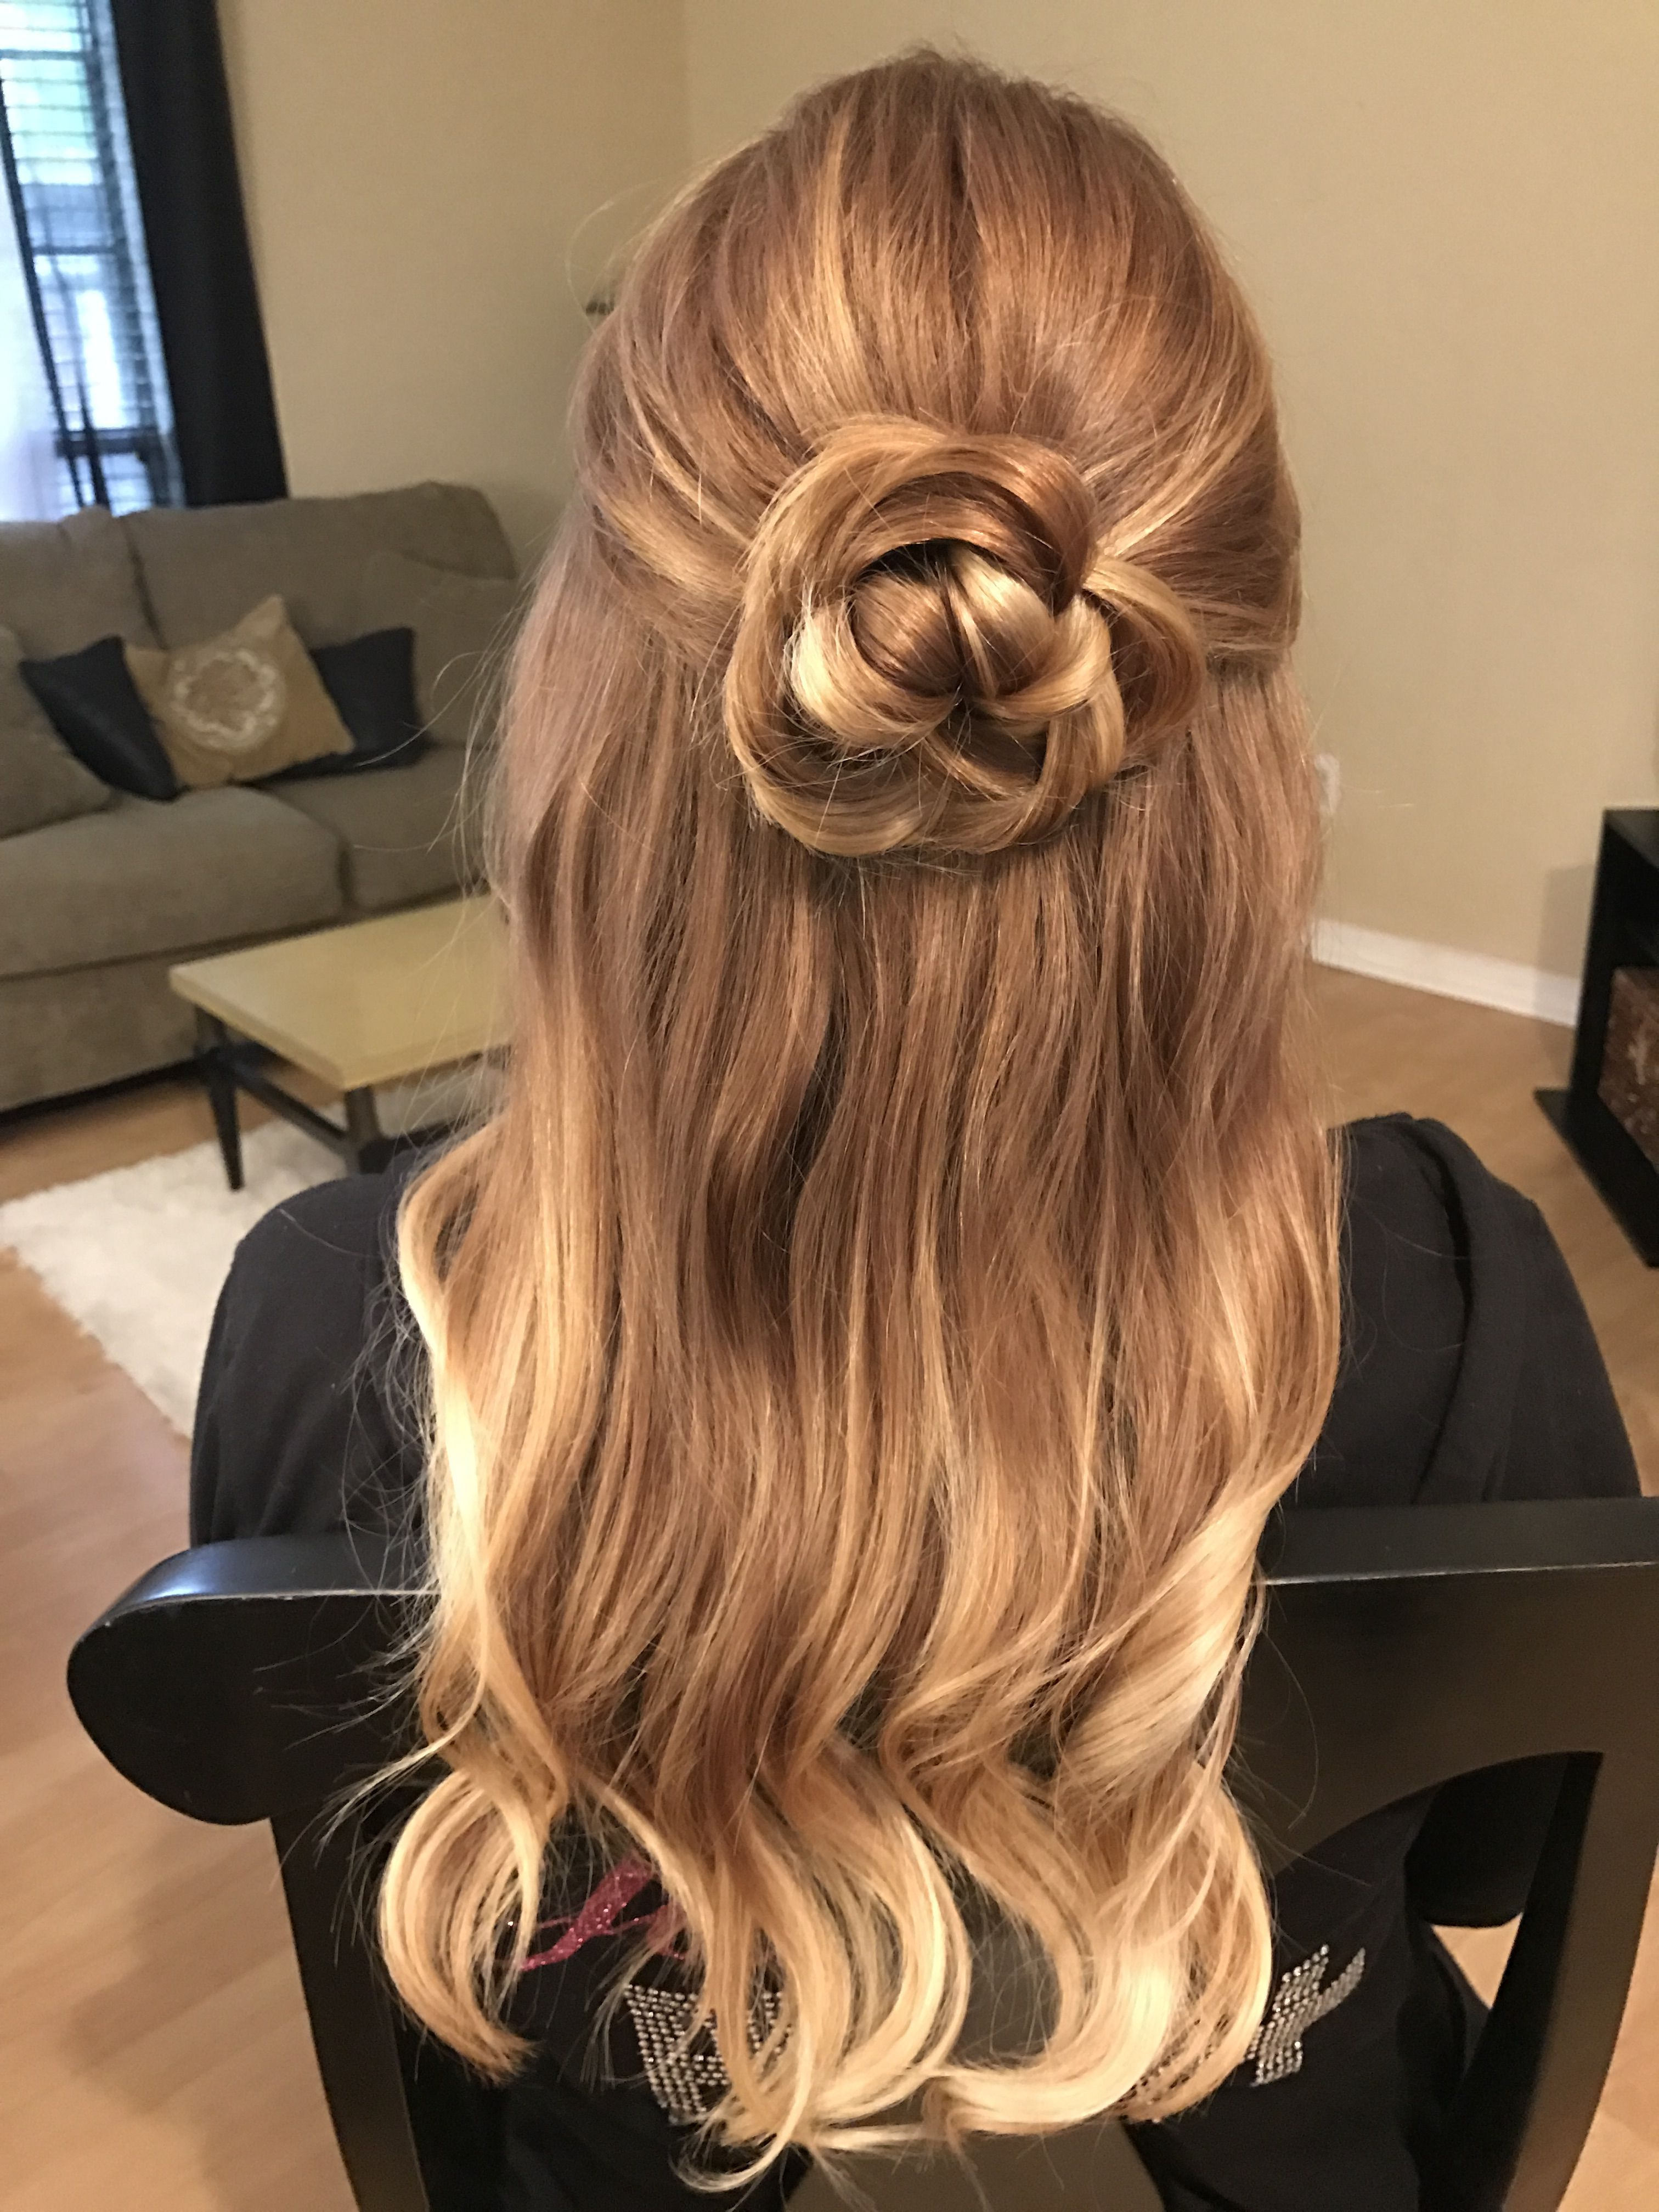 Top amazing hairstyles tutorials compilation hair ideas